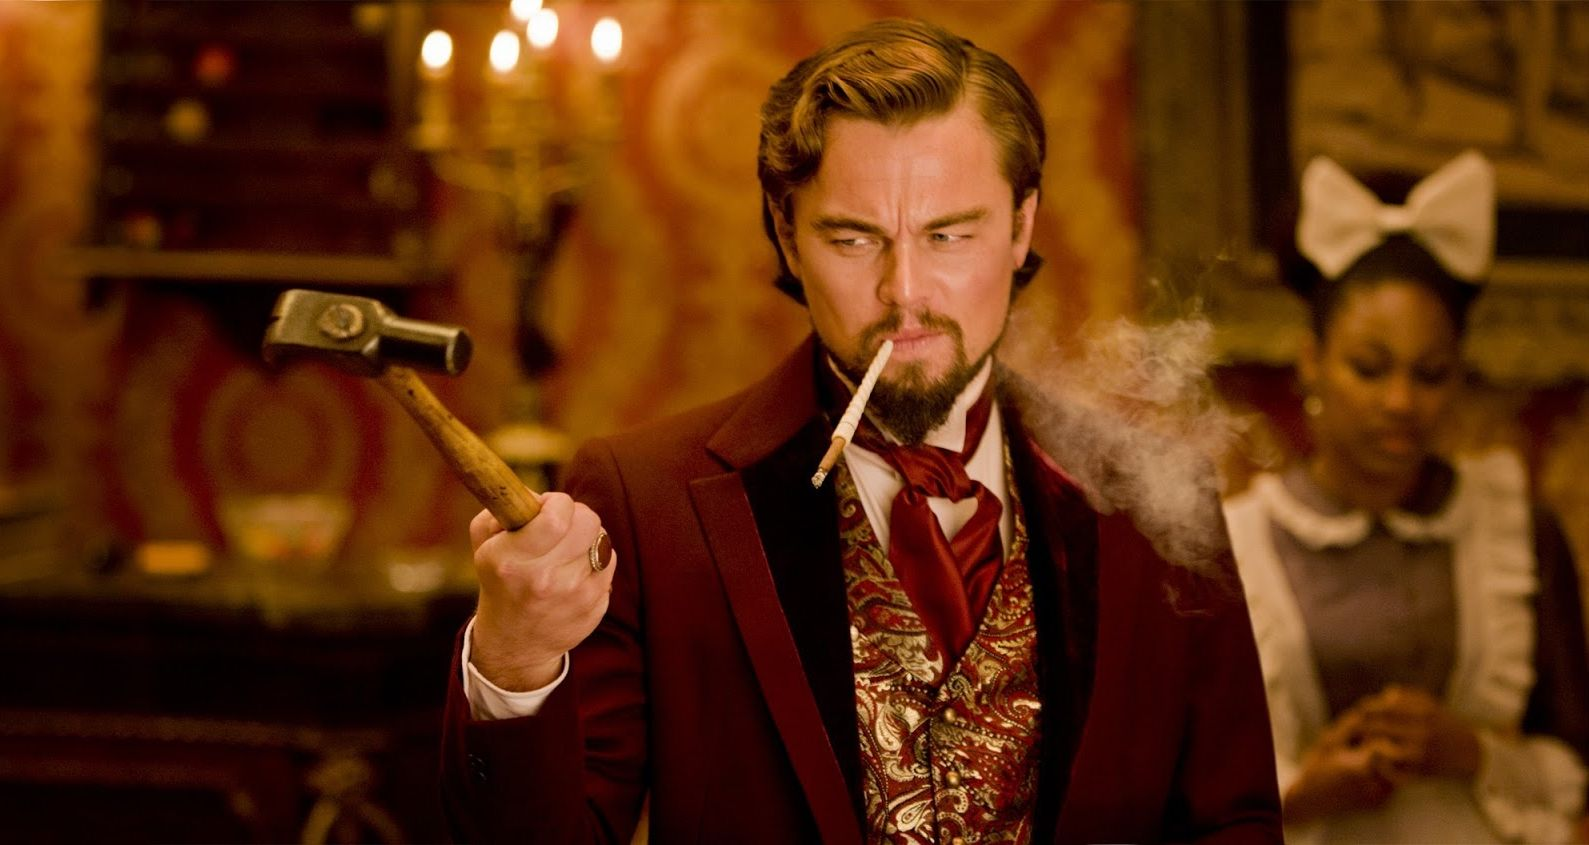 In Django Unchained, DiCaprio accidentally smashed a glass and sliced his hand. This was kept in the film.